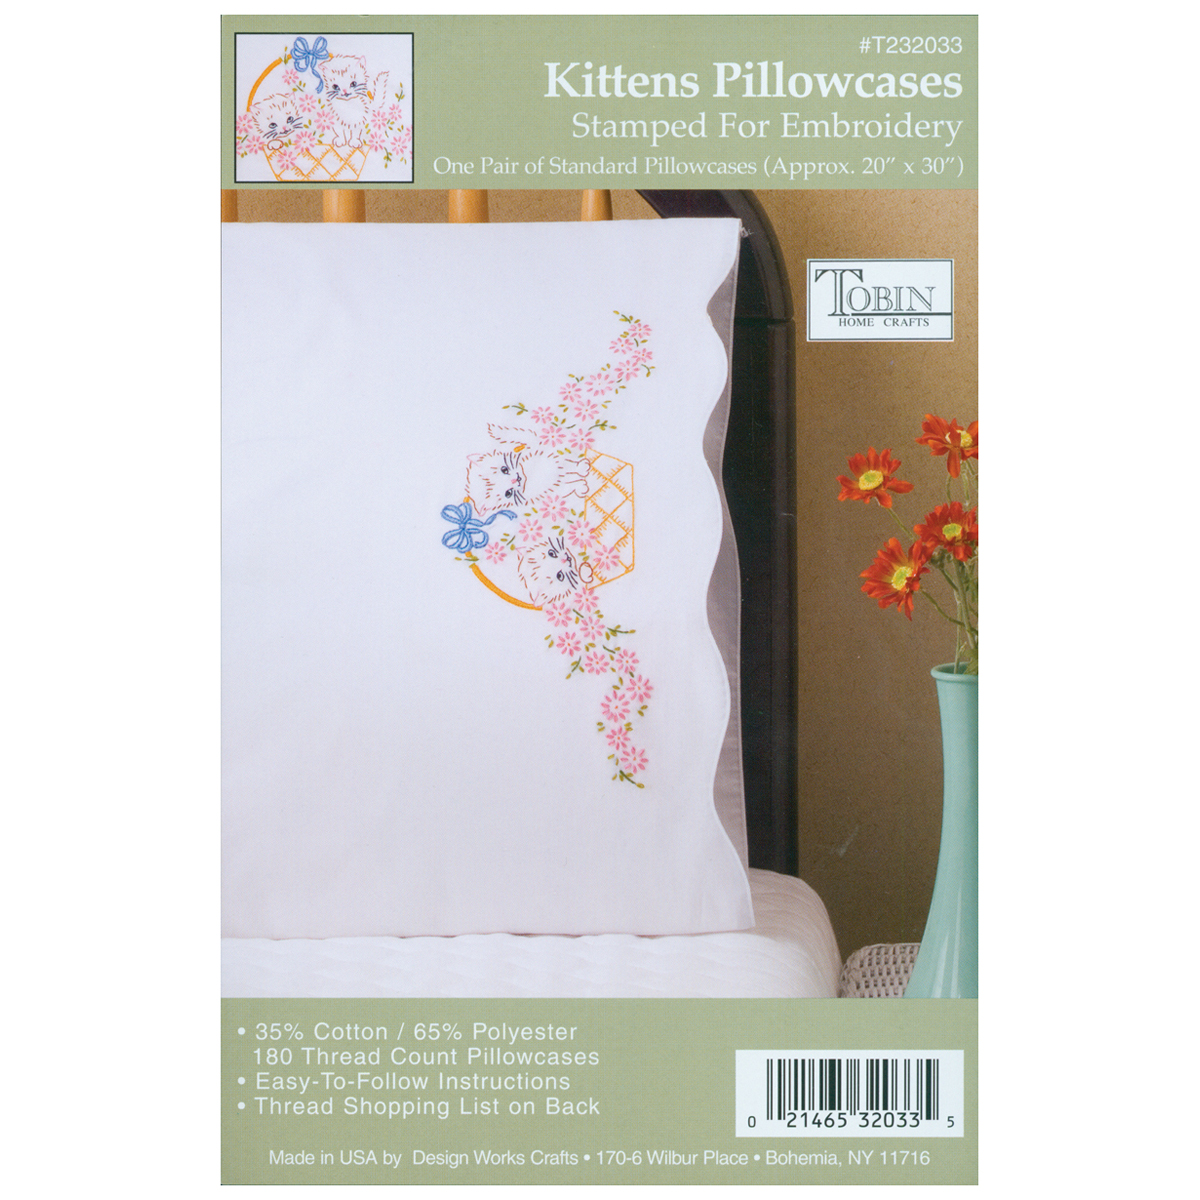 "Stamped Pillowcase Pair For Embroidery, Kittens, 20"" x 30"""